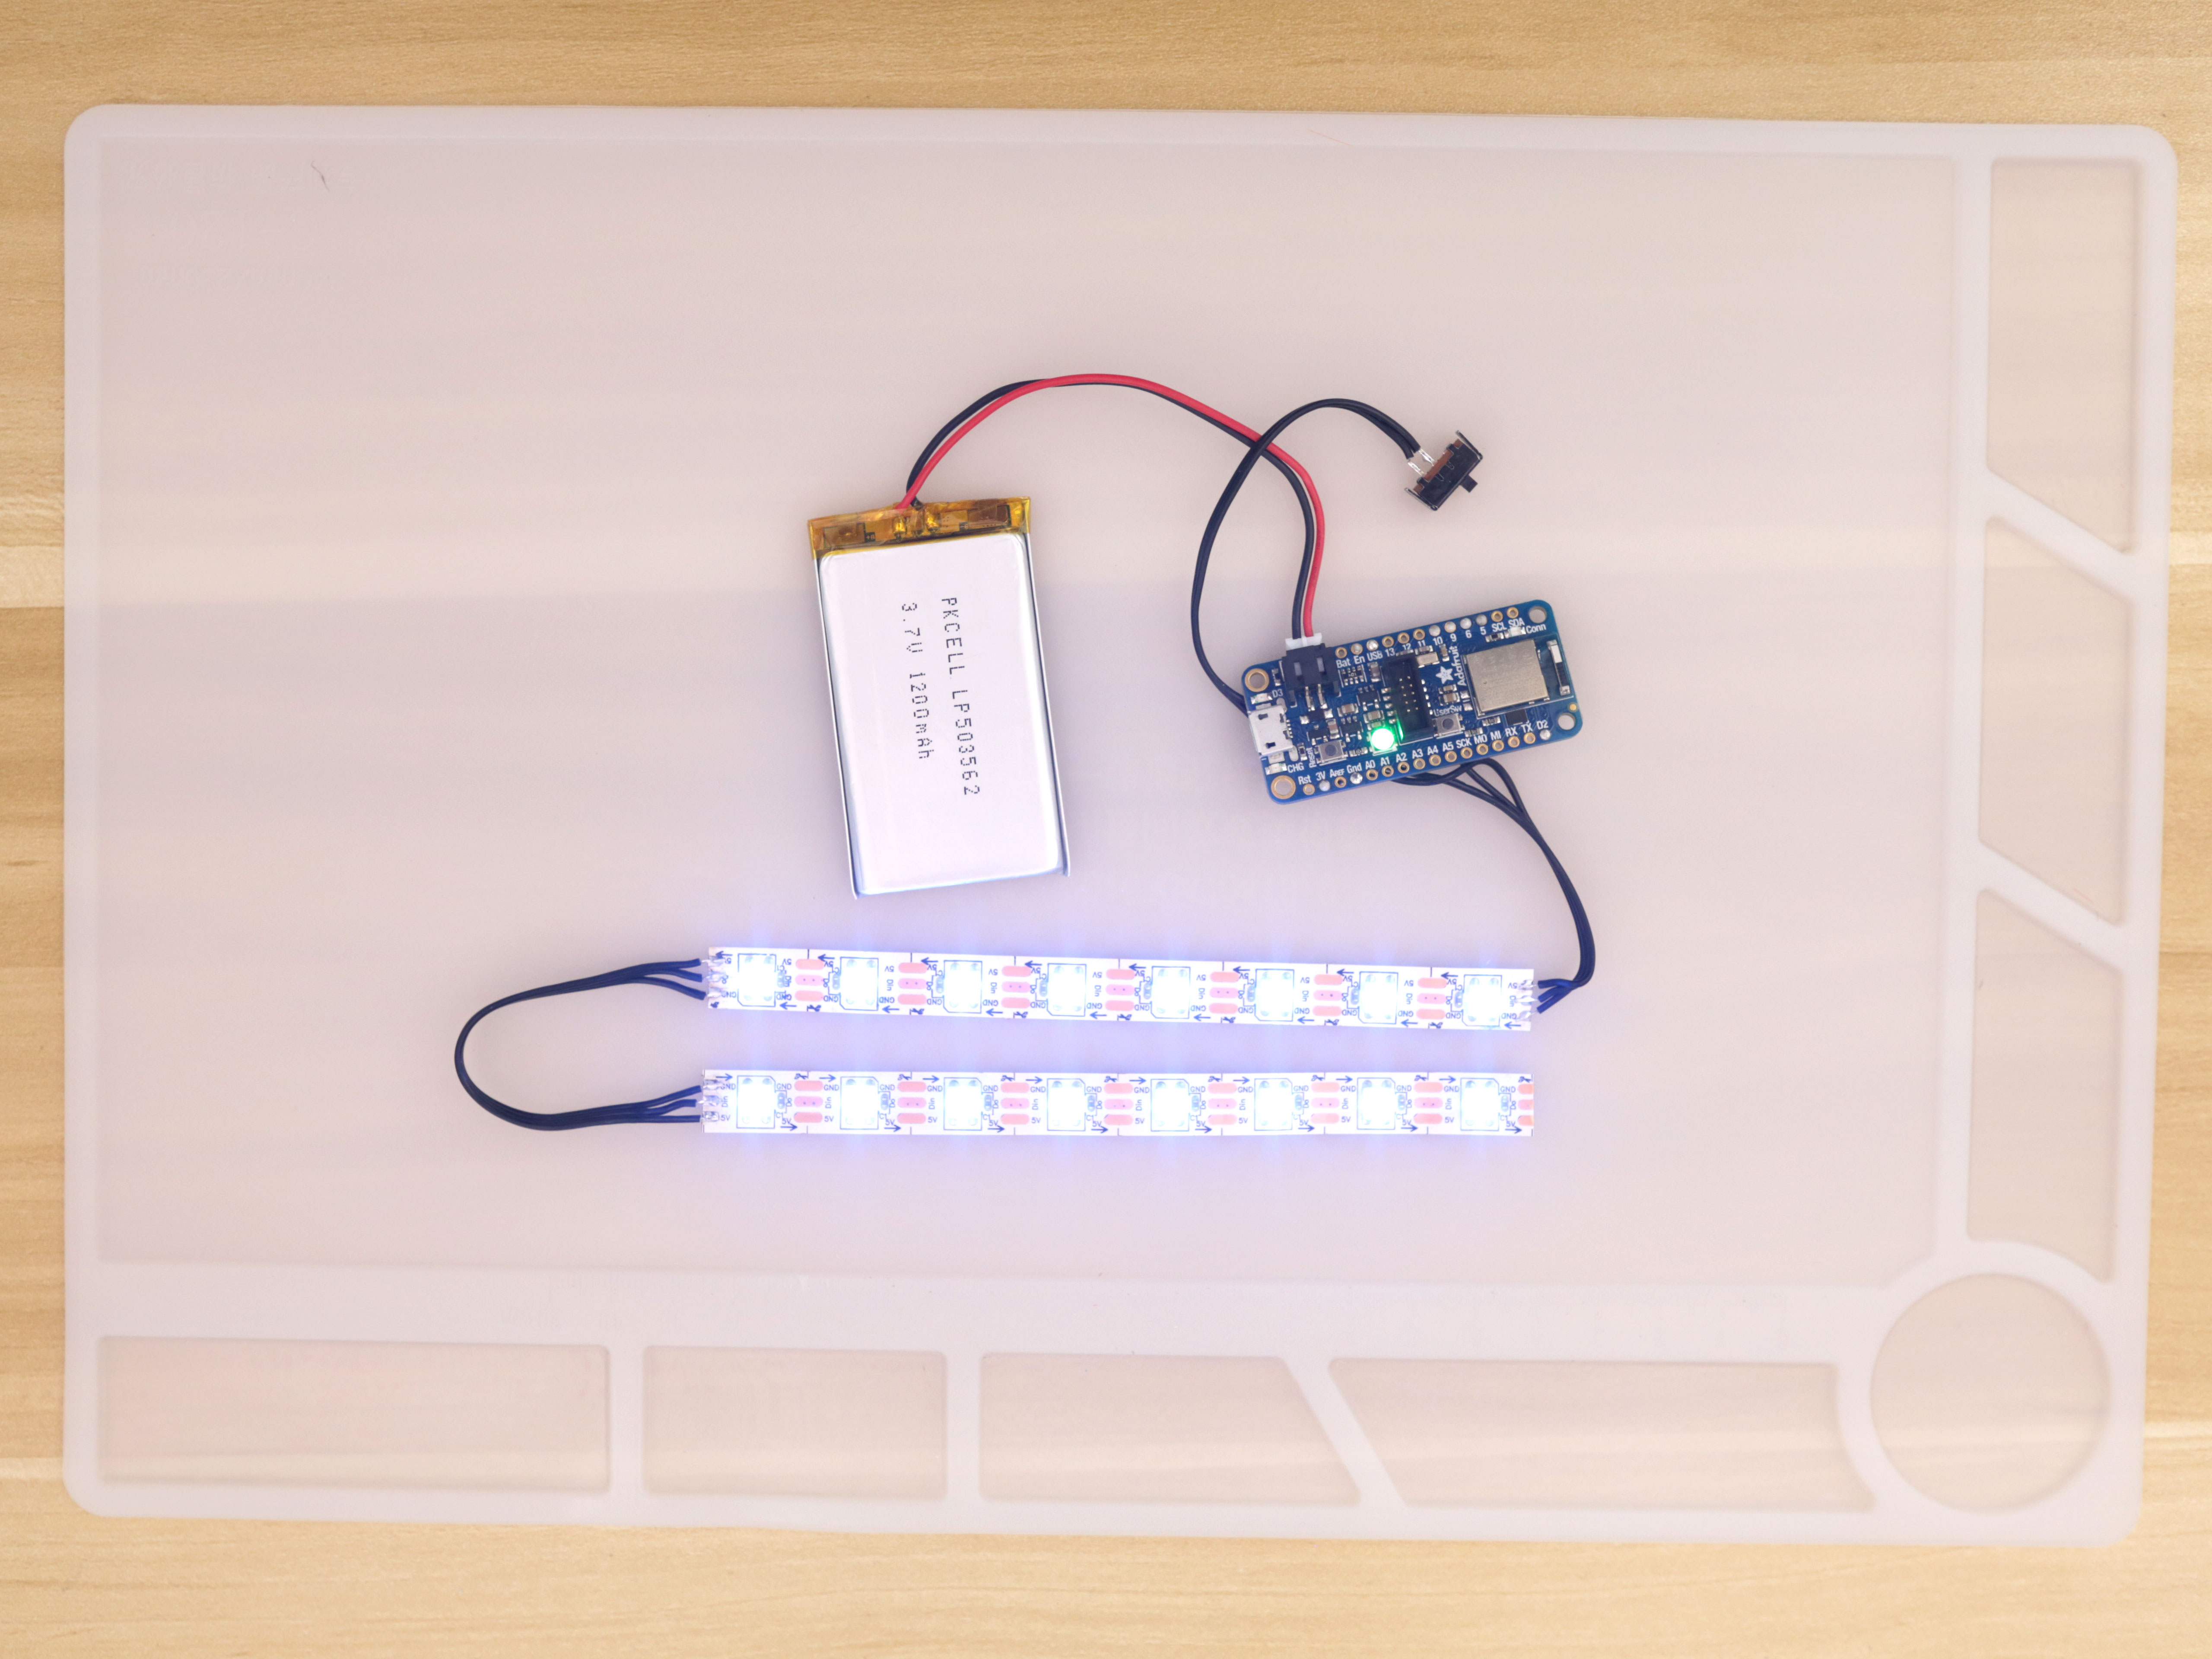 led_strips_circuit-test.jpg